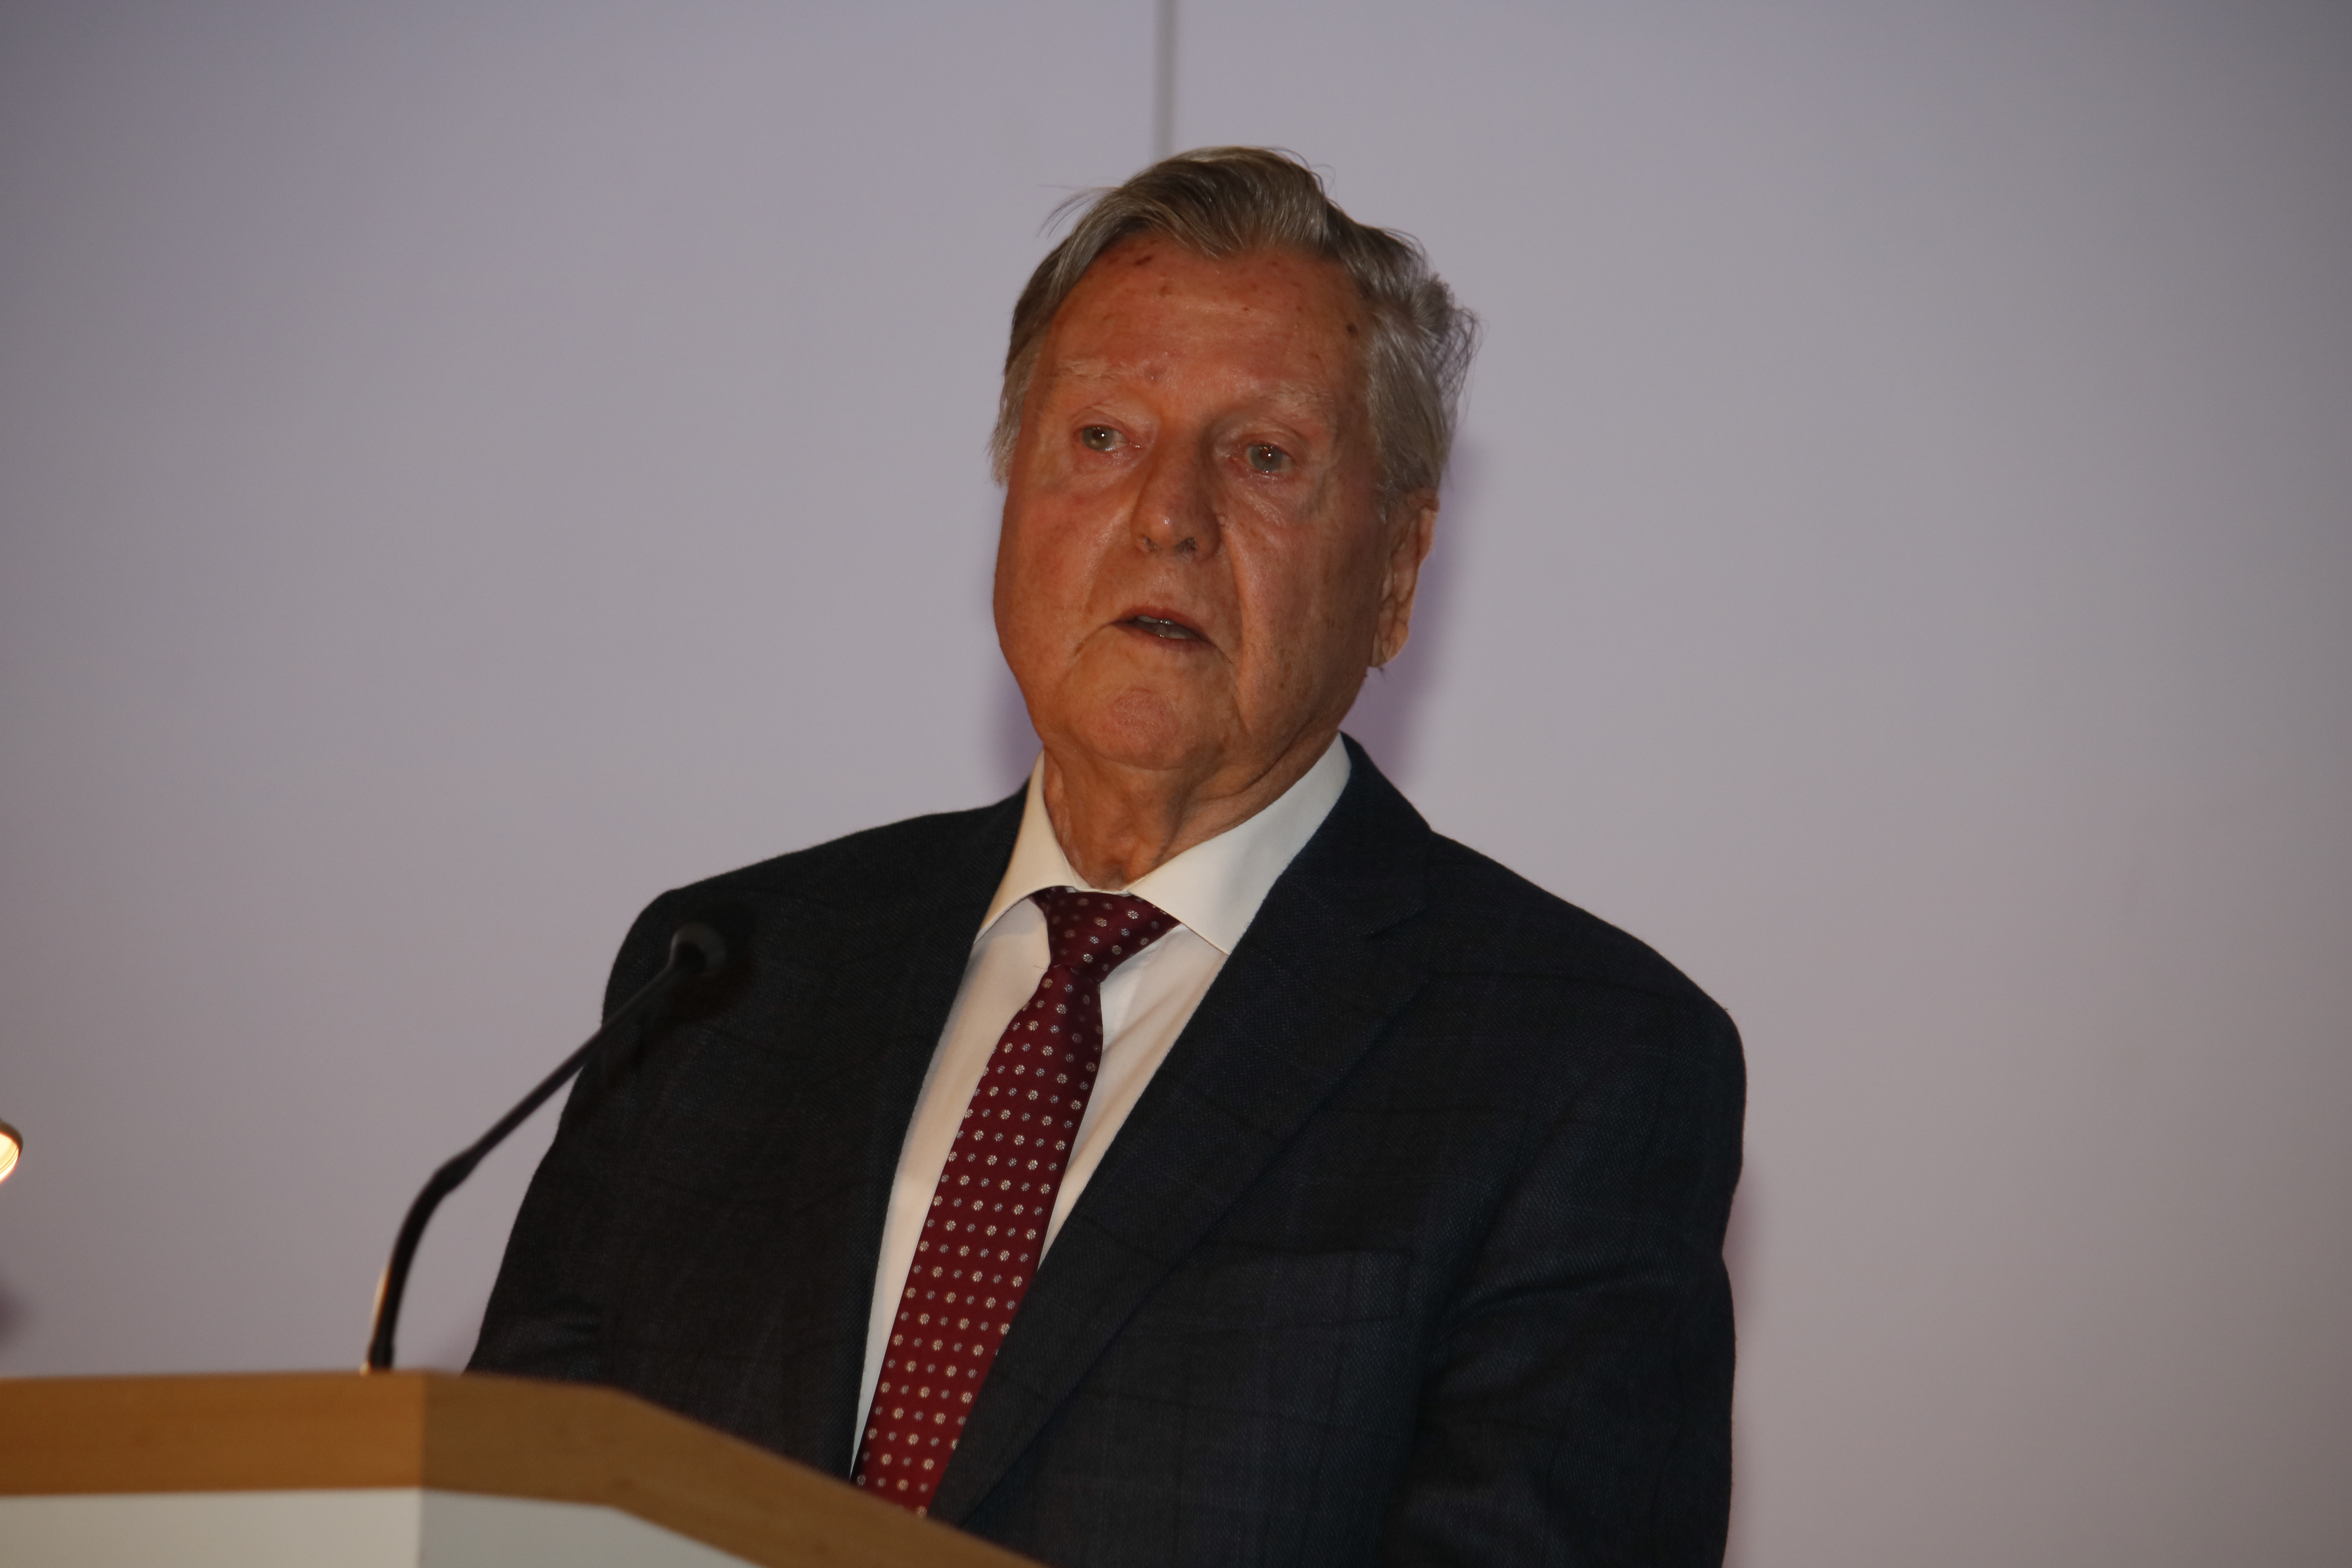 Prof. Dr. Wolfgang Sommer